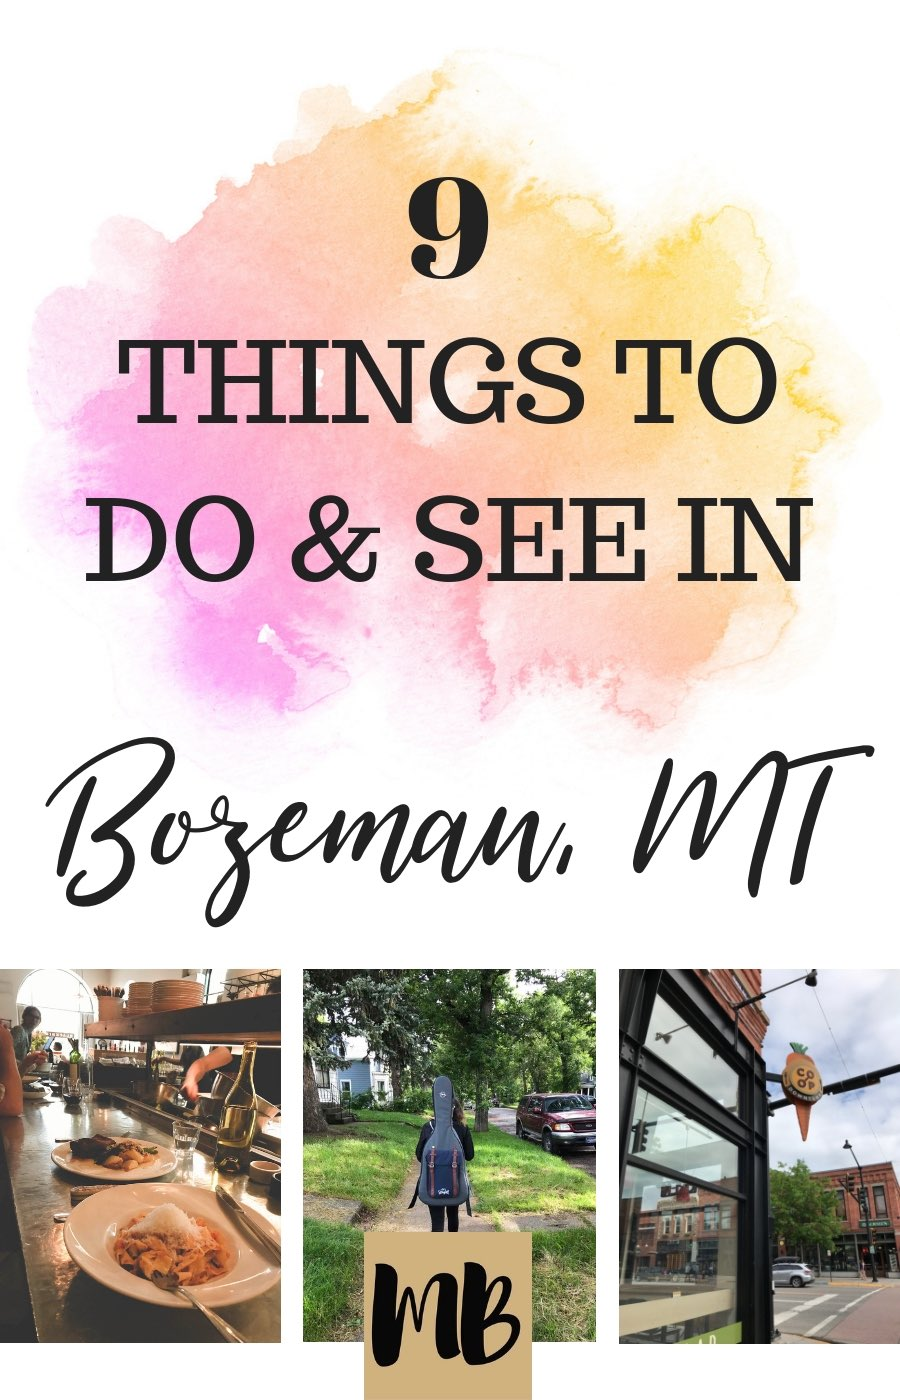 Things to do in Bozeman, MT | Bozeman Trip Report | Bozeman Music Festivals | Bozeman Places to Eat